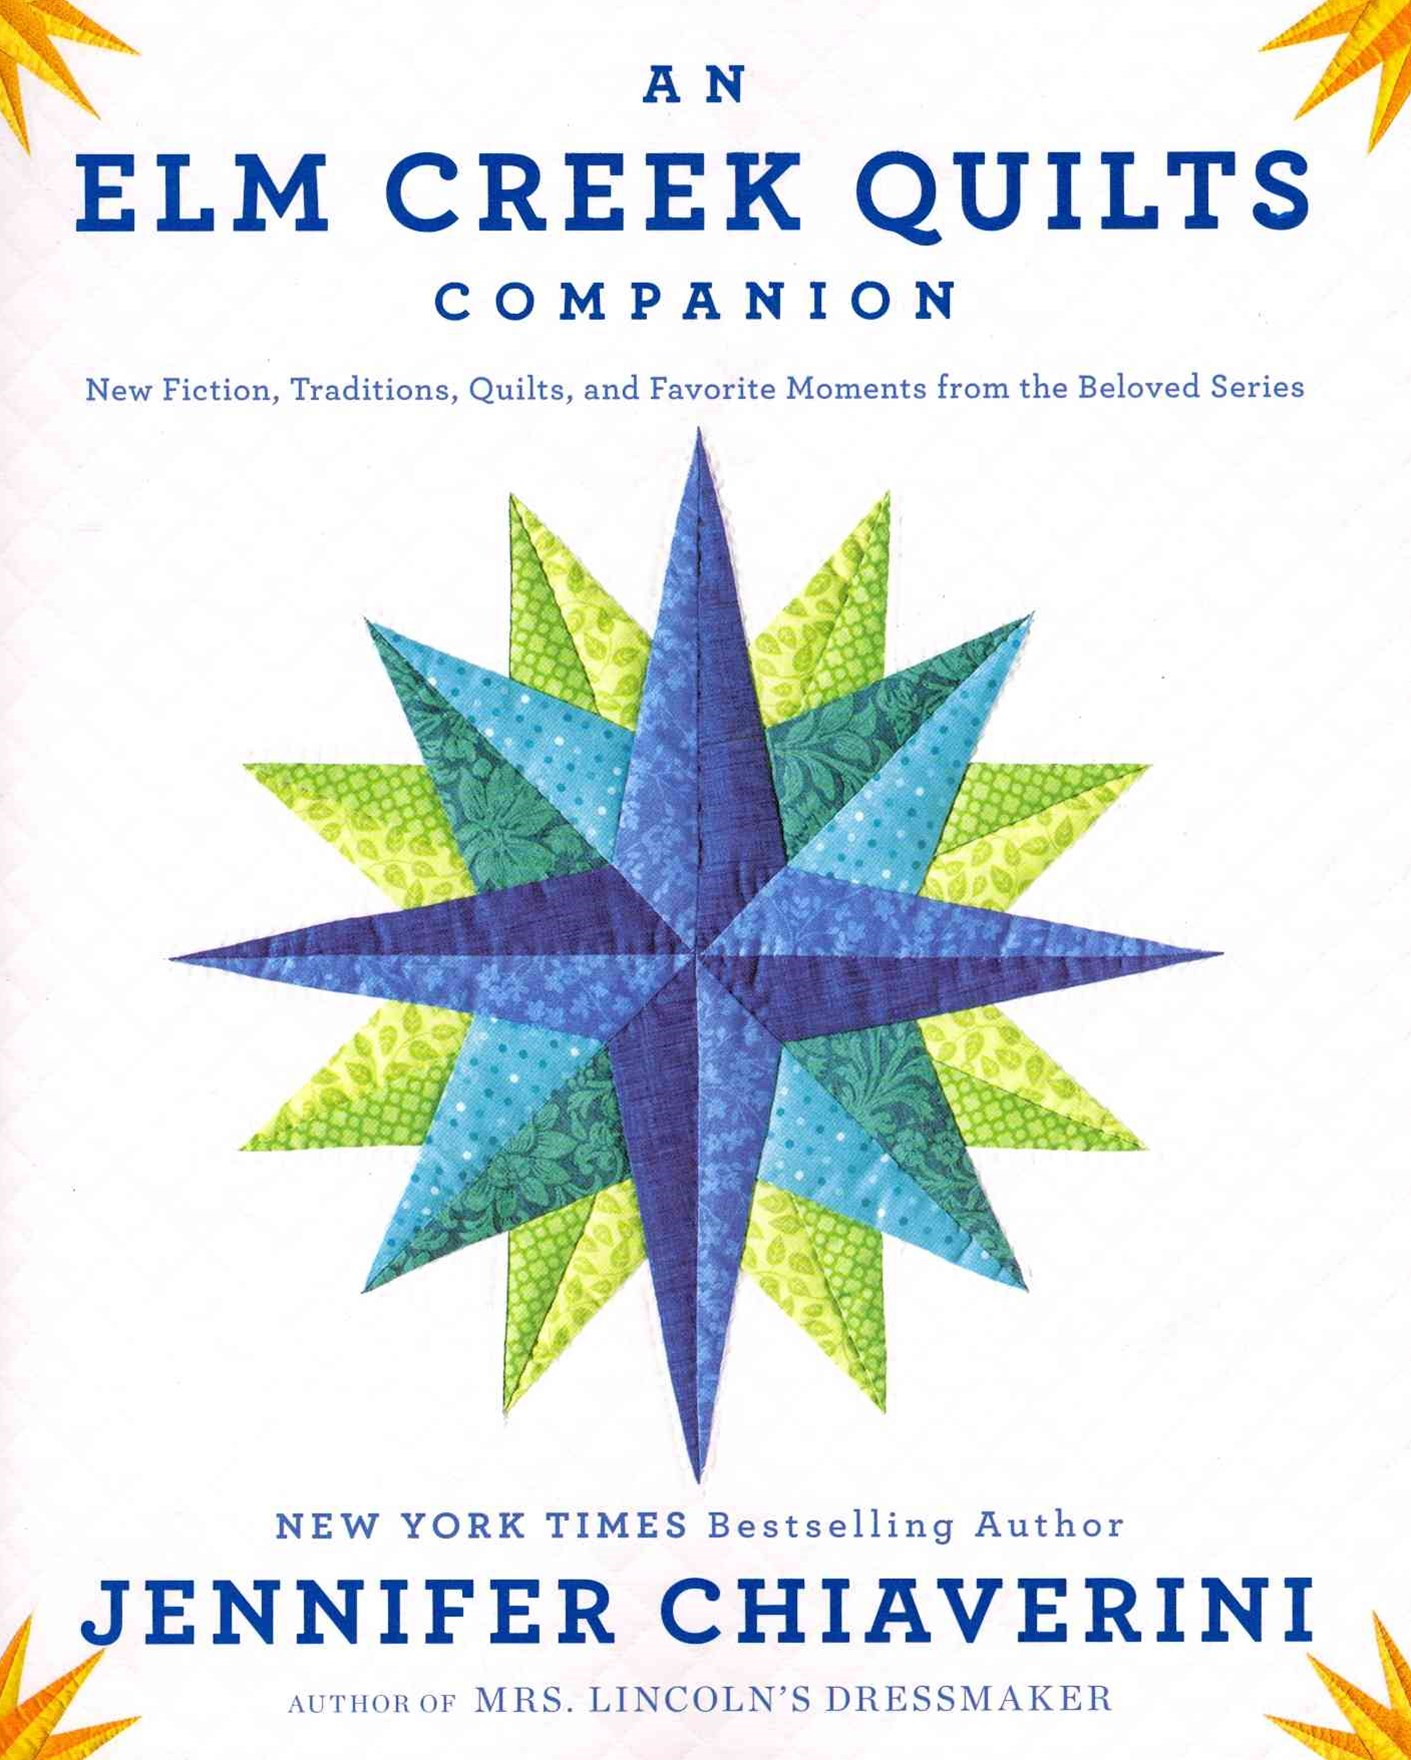 Elm Creek Quilts Companion: New Fiction, Traditions, Quilts,And Favorite Moments From The Beloved Series, An